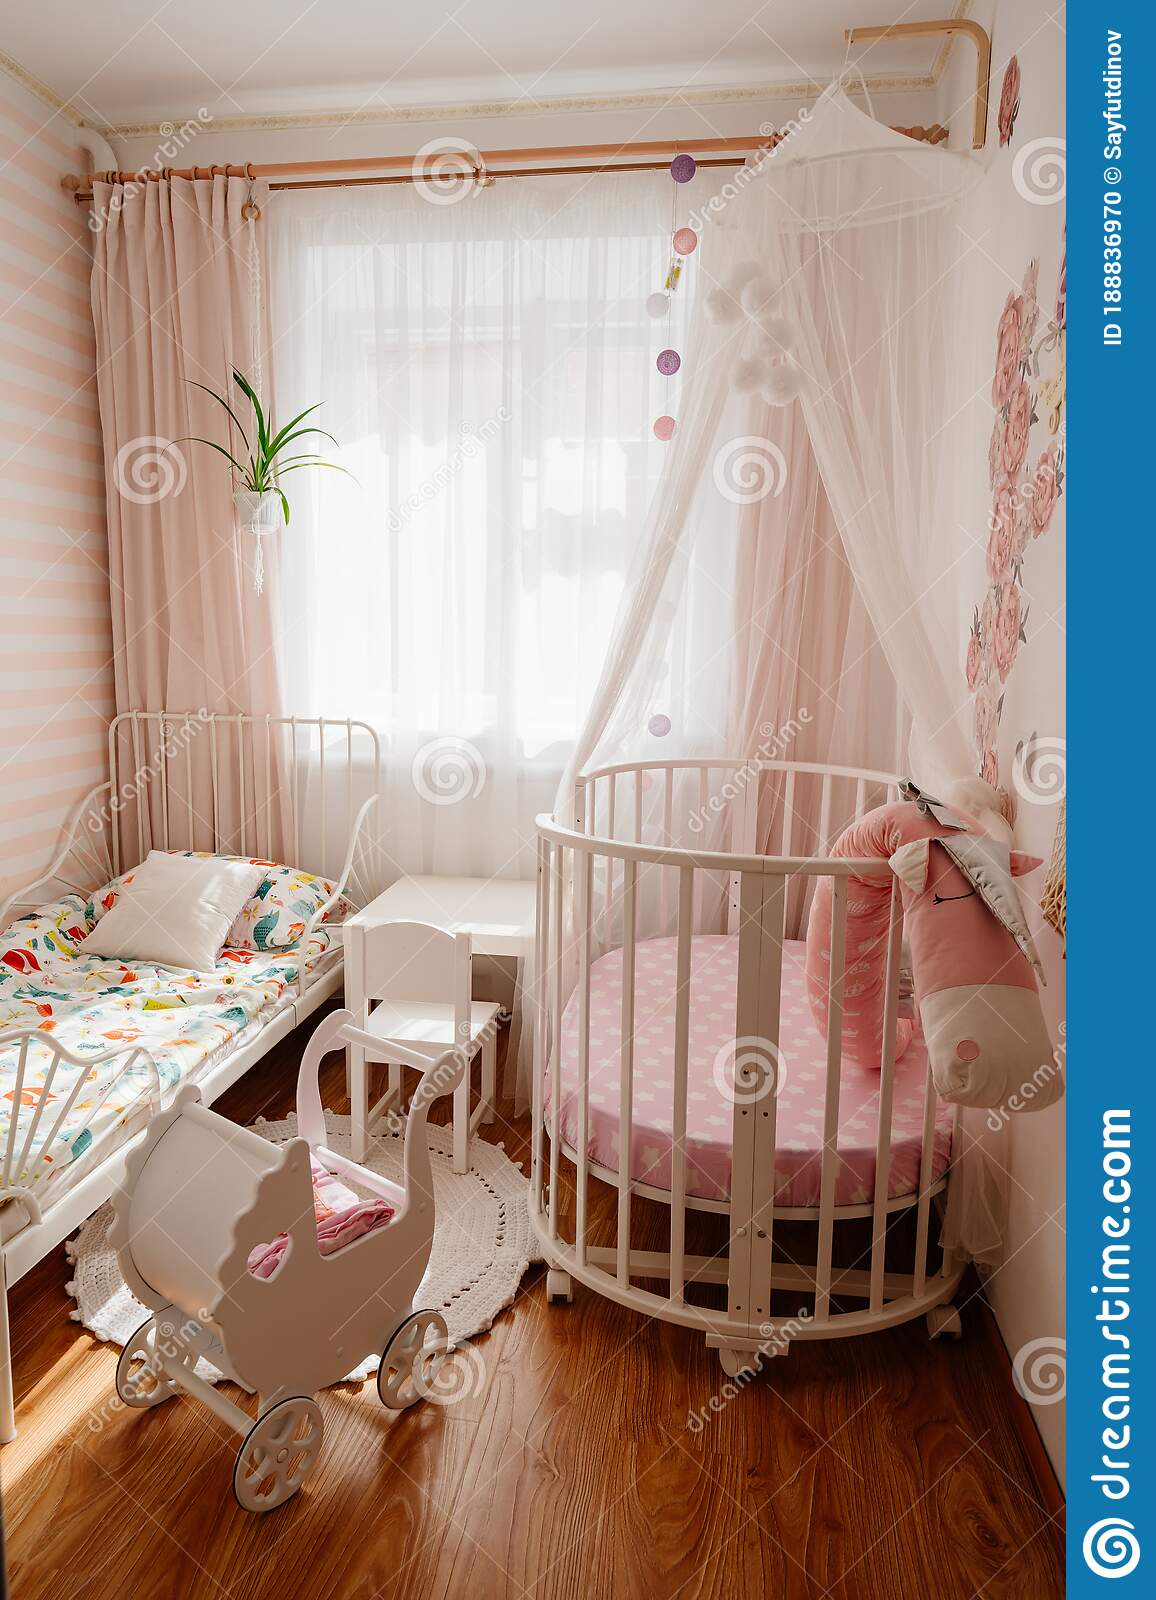 Picture of: Beautiful Little Cosy White Kids Room With Two Beds For Girls Kids Stock Photo Image Of Kids Building 188836970